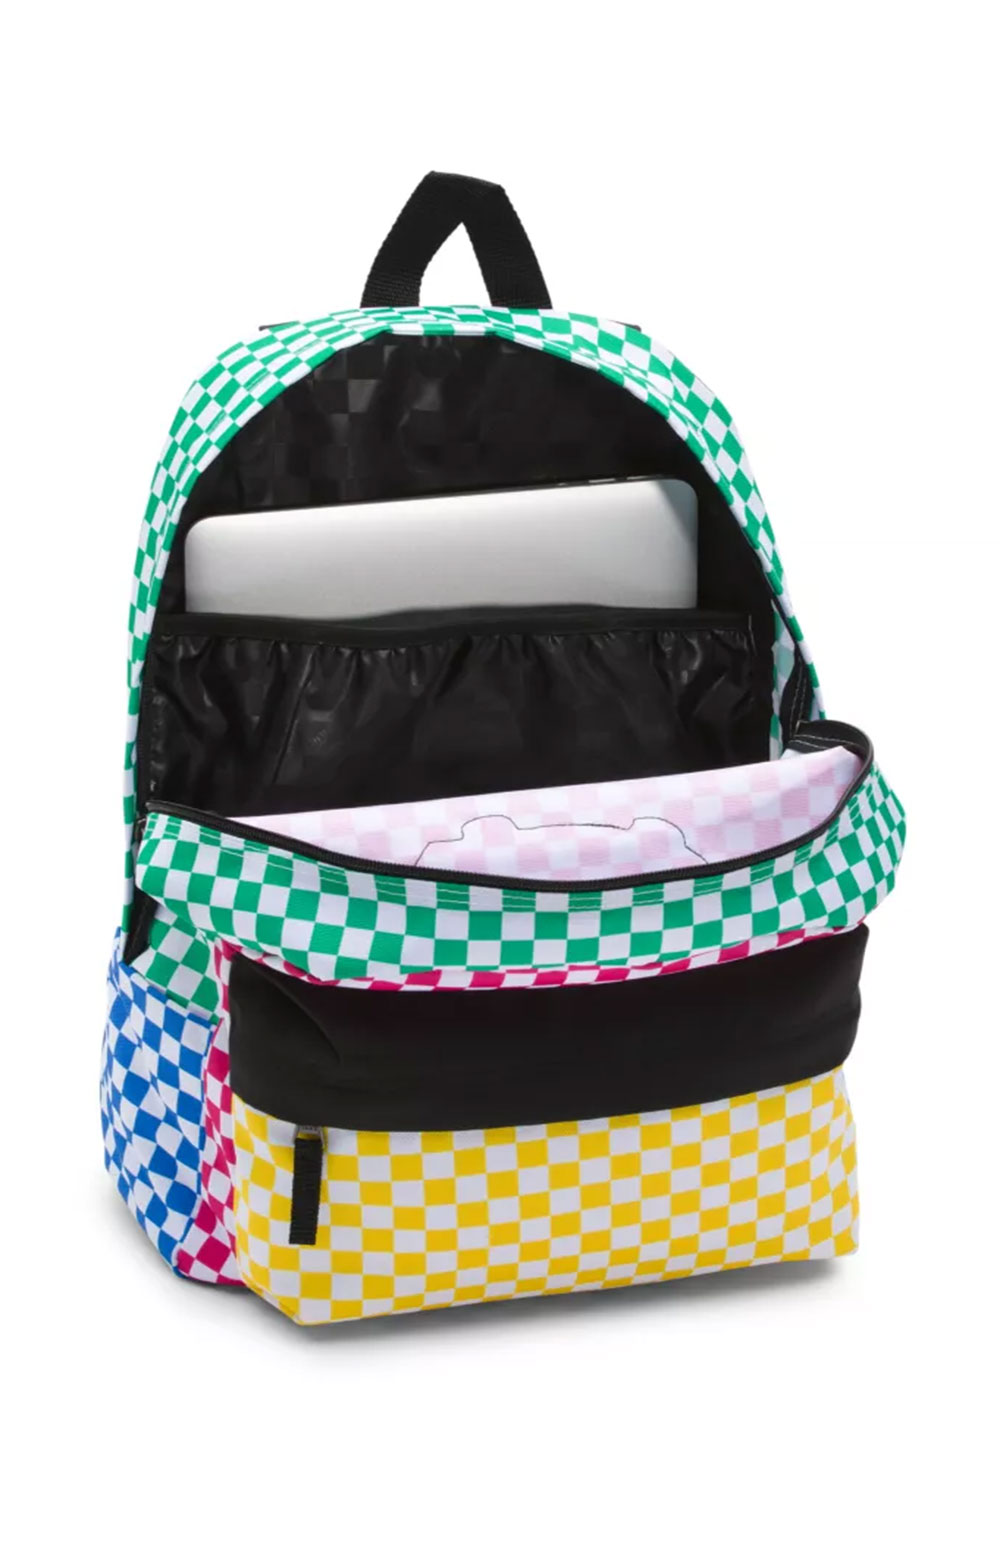 Realm Backpack - Checker Block  2